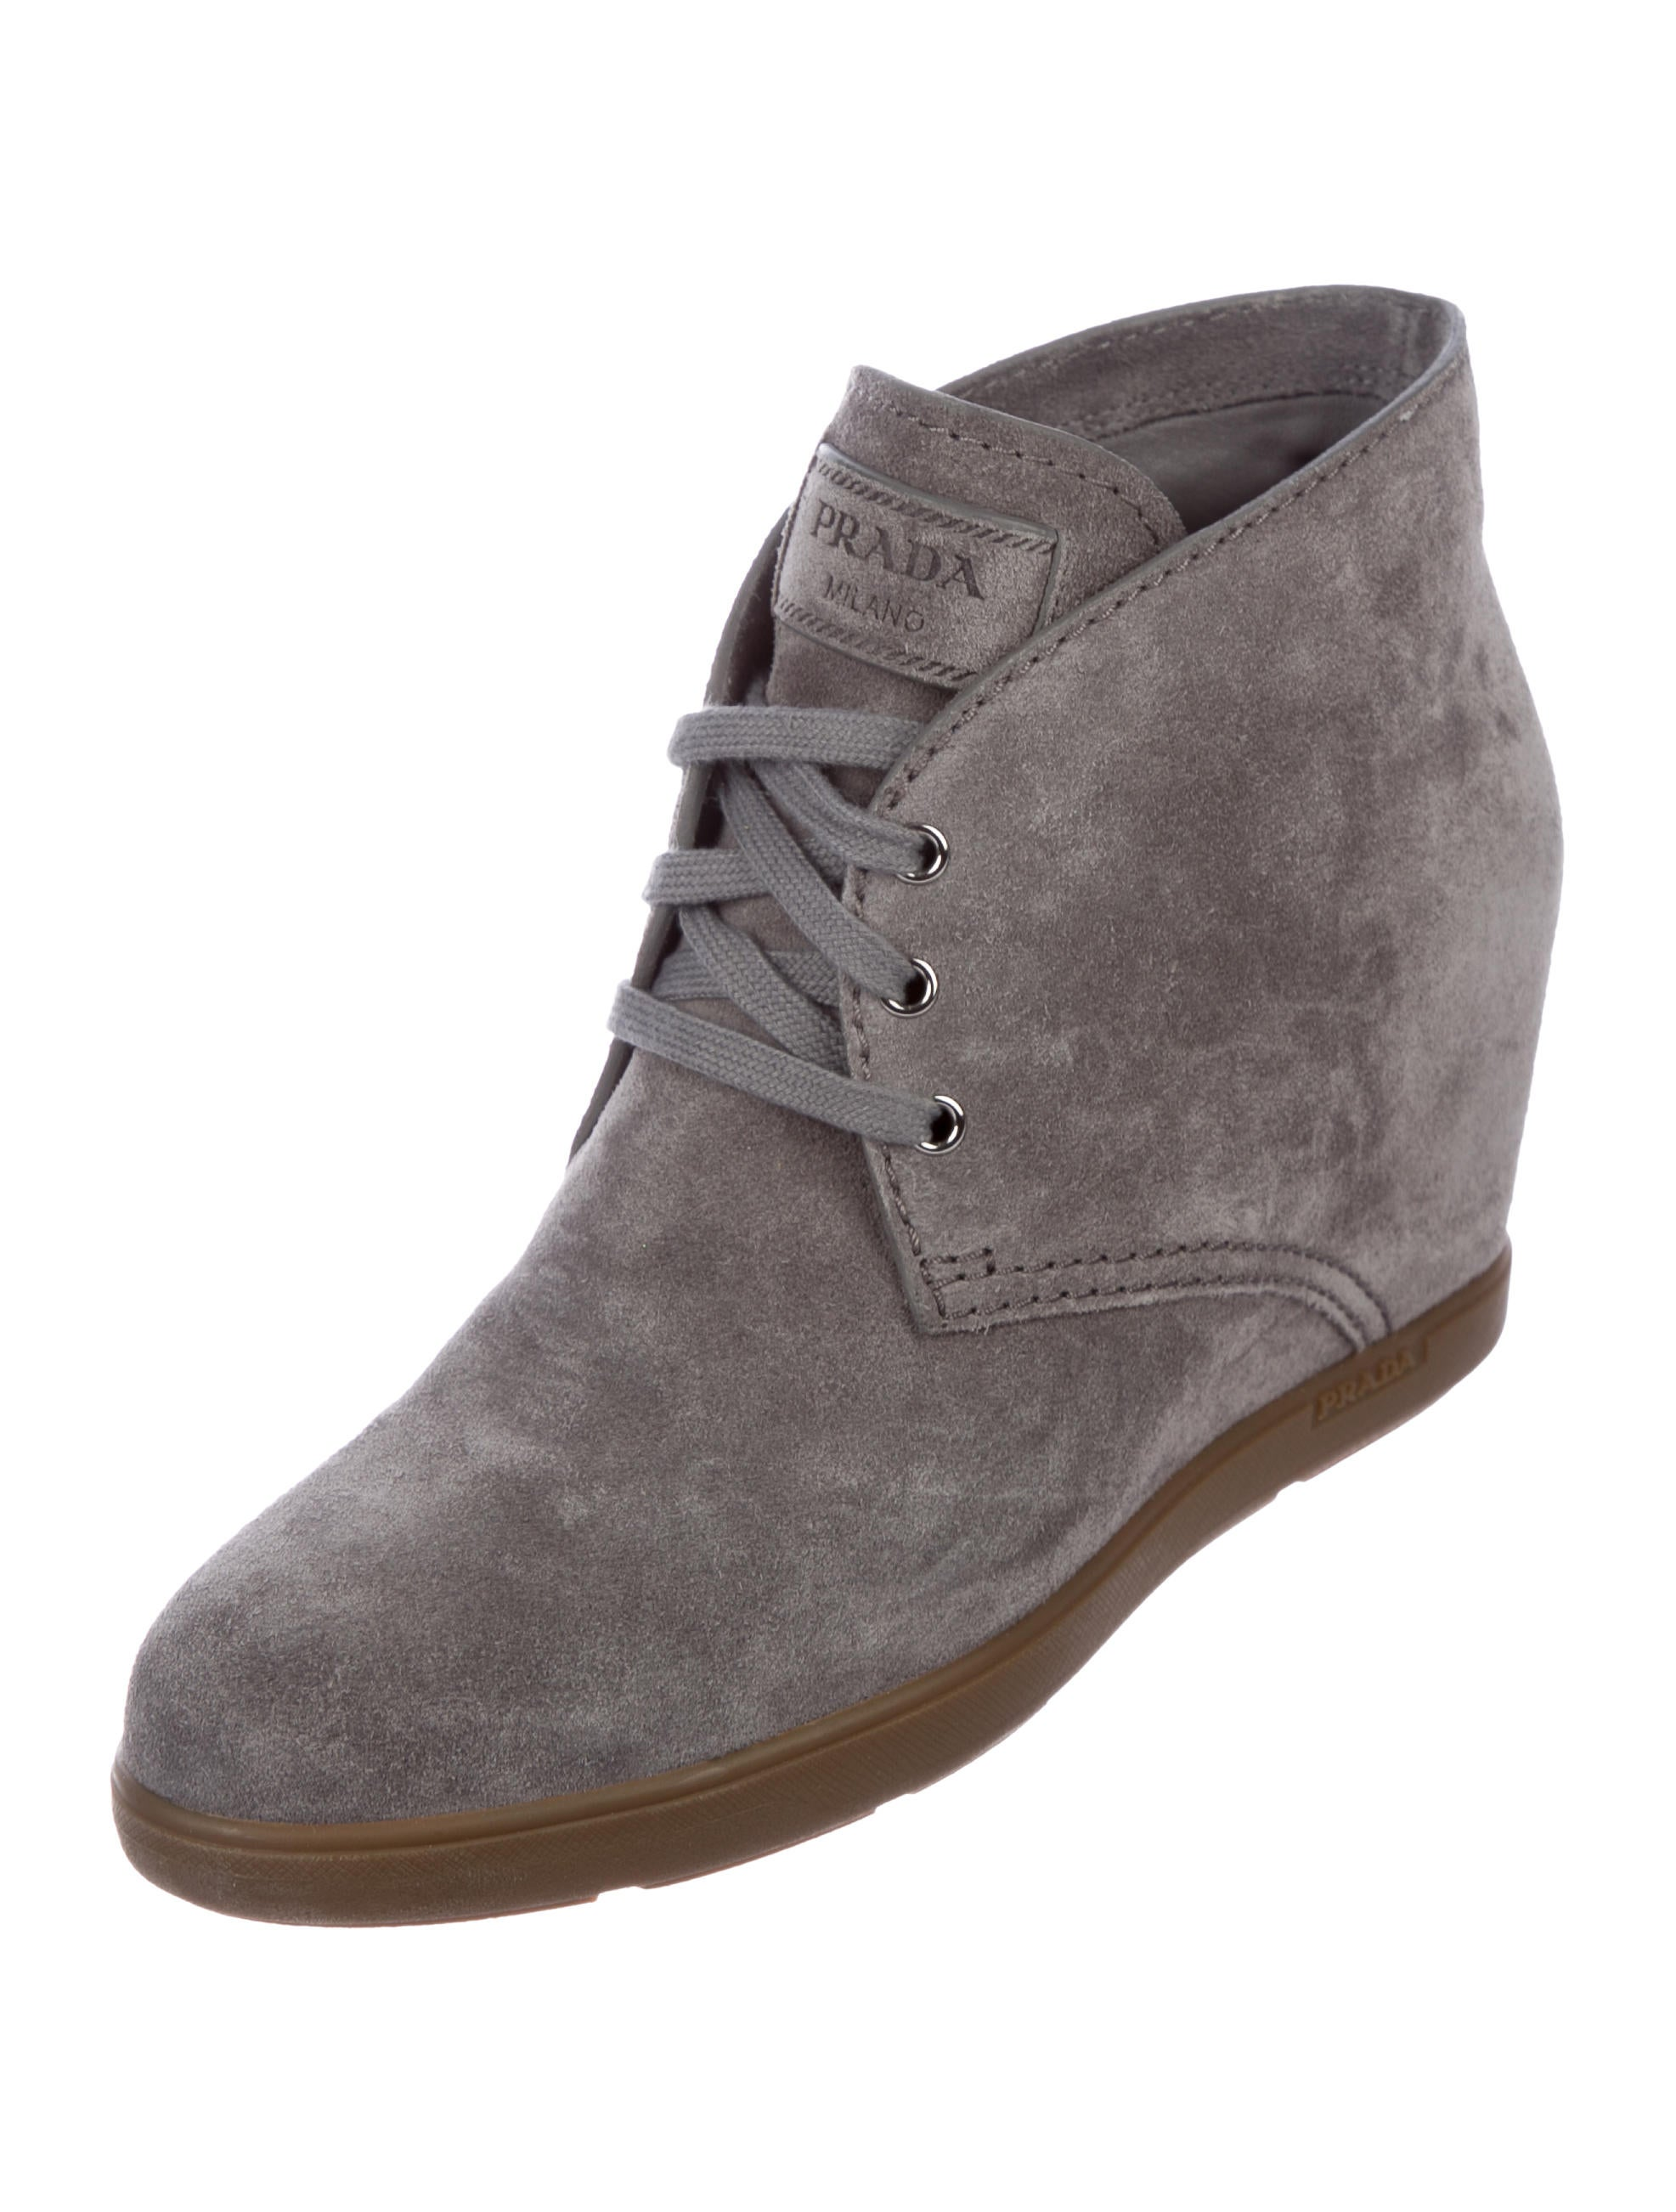 clearance official Prada Sport Scamosciato Ghiaia Suede Booties newest cheap online 100% guaranteed cheap online discount many kinds of 98QsS24vW